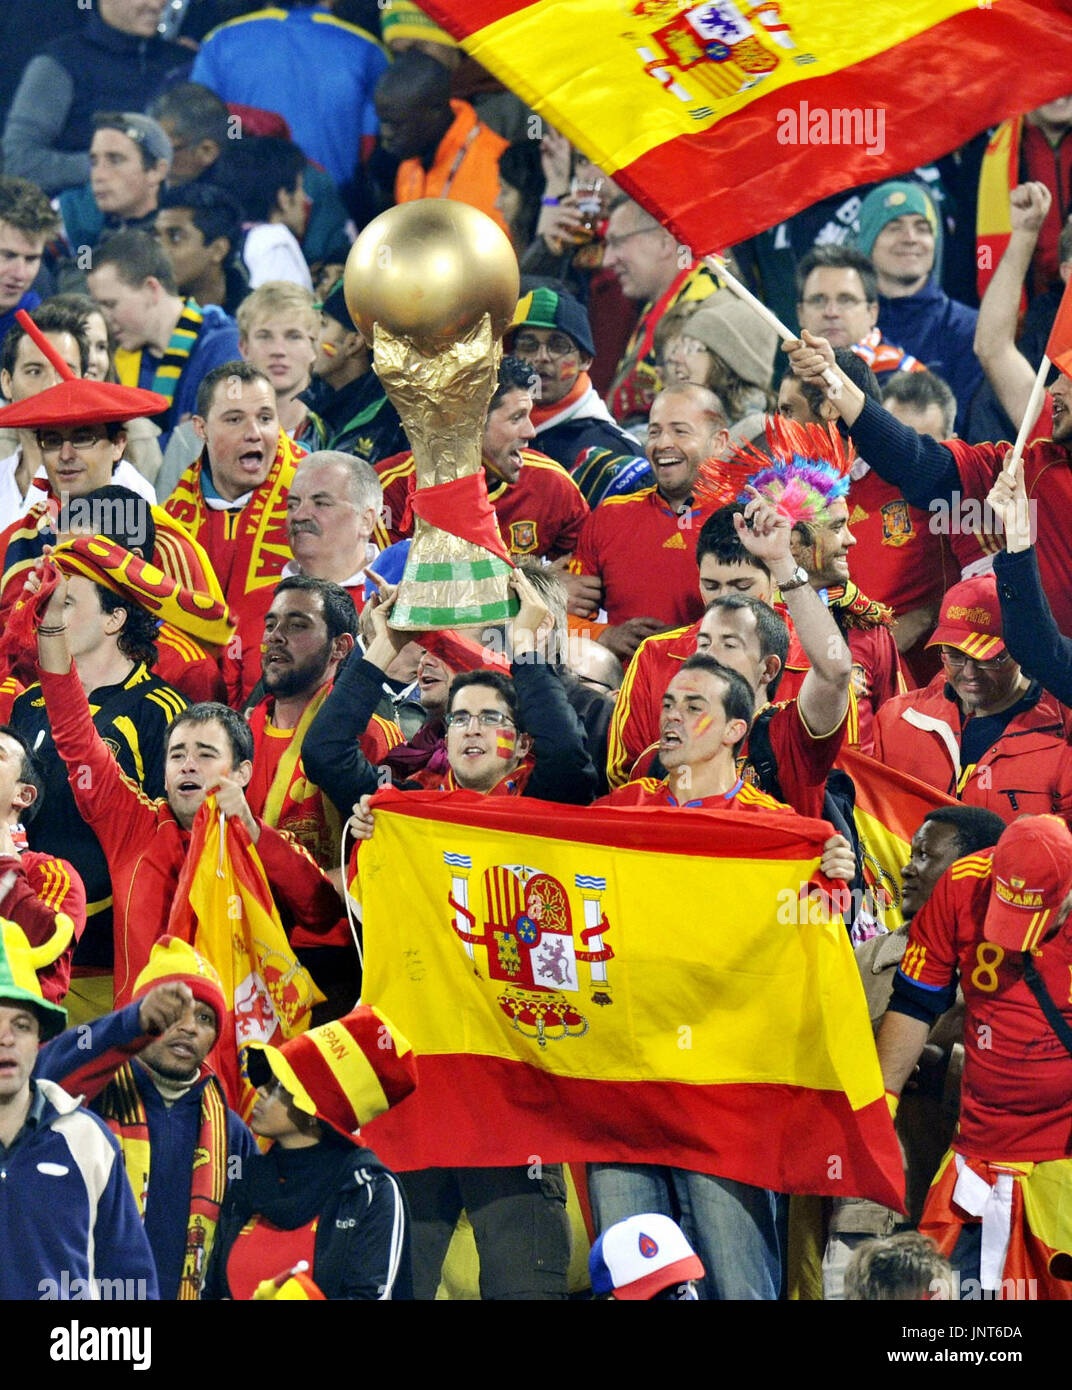 PRETORIA, South Africa - Supporters of Spain cheer for their team during a World Cup Group H match between Spain and Chile at Loftus Versfeld Stadium in Pretoria, South Africa, on June 25, 2010. Spain beat Chile 2-1 but both teams advanced to the round of 16. (Kyodo) Stock Photo